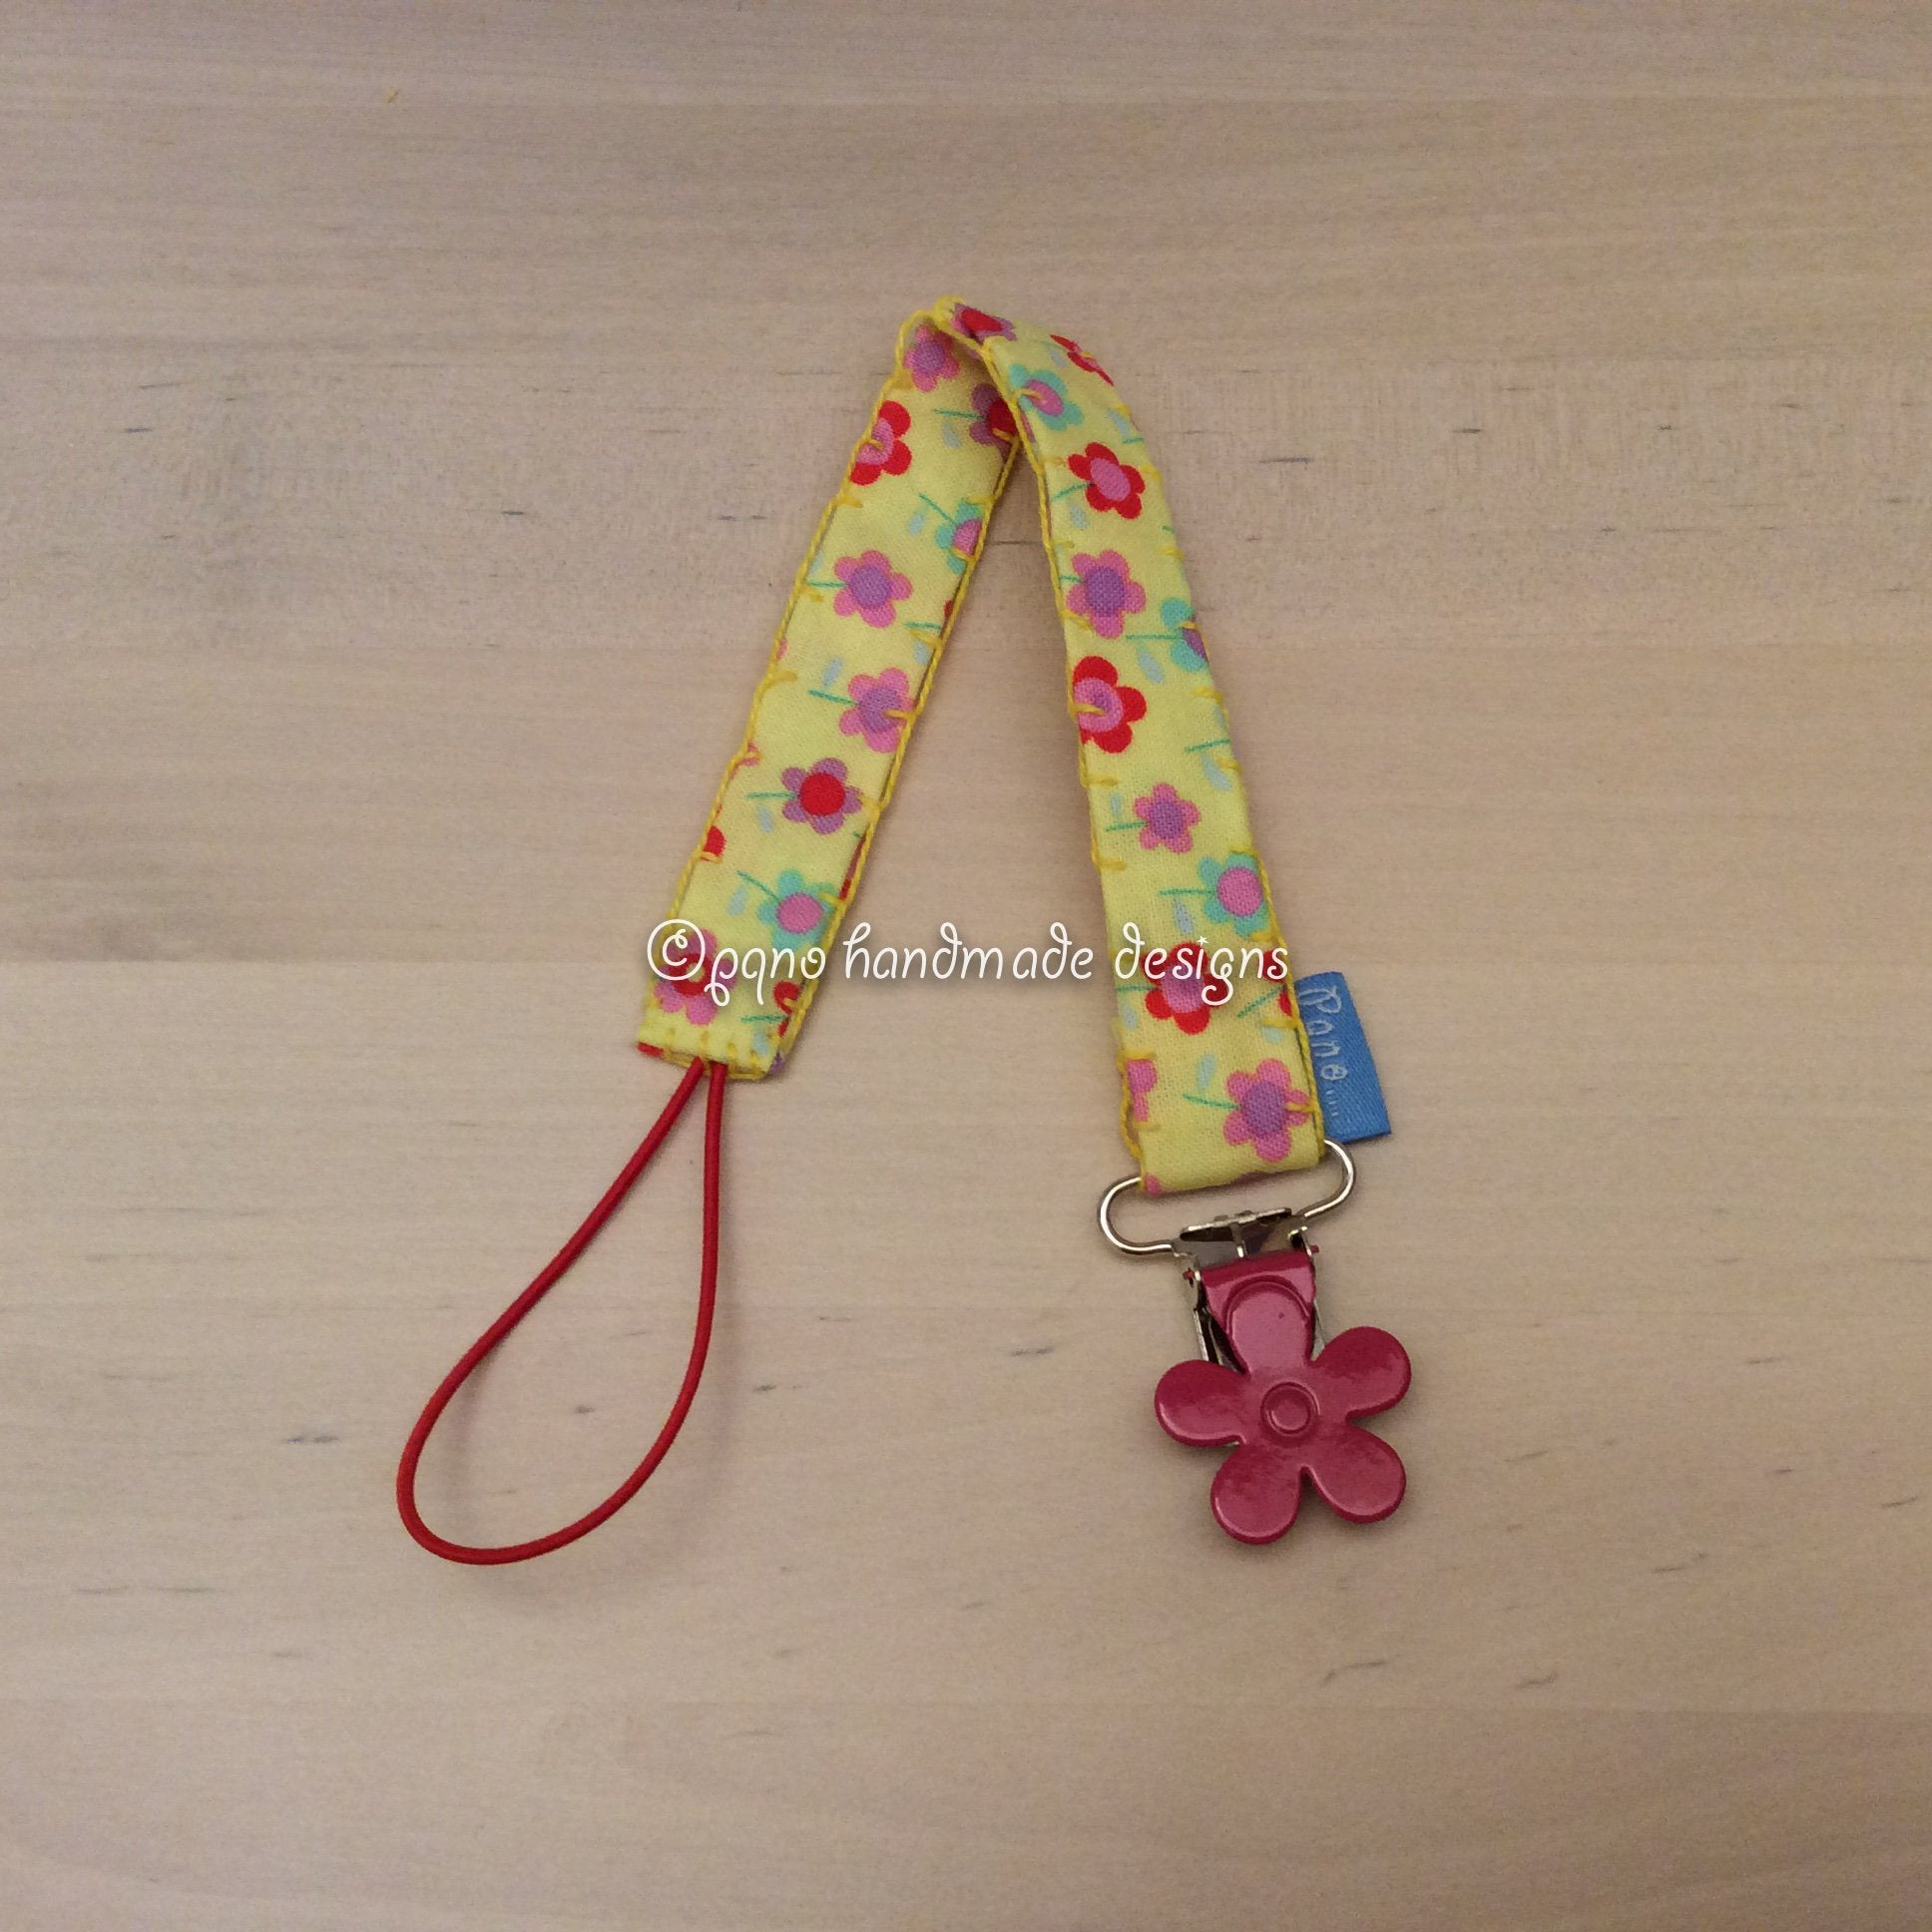 Chupetero flores fondo amarillo - Cinta xumet flors fons groc - Pacifier holder flowers yellow background strap - Smokkesnor blomster gul backgrunn stropp